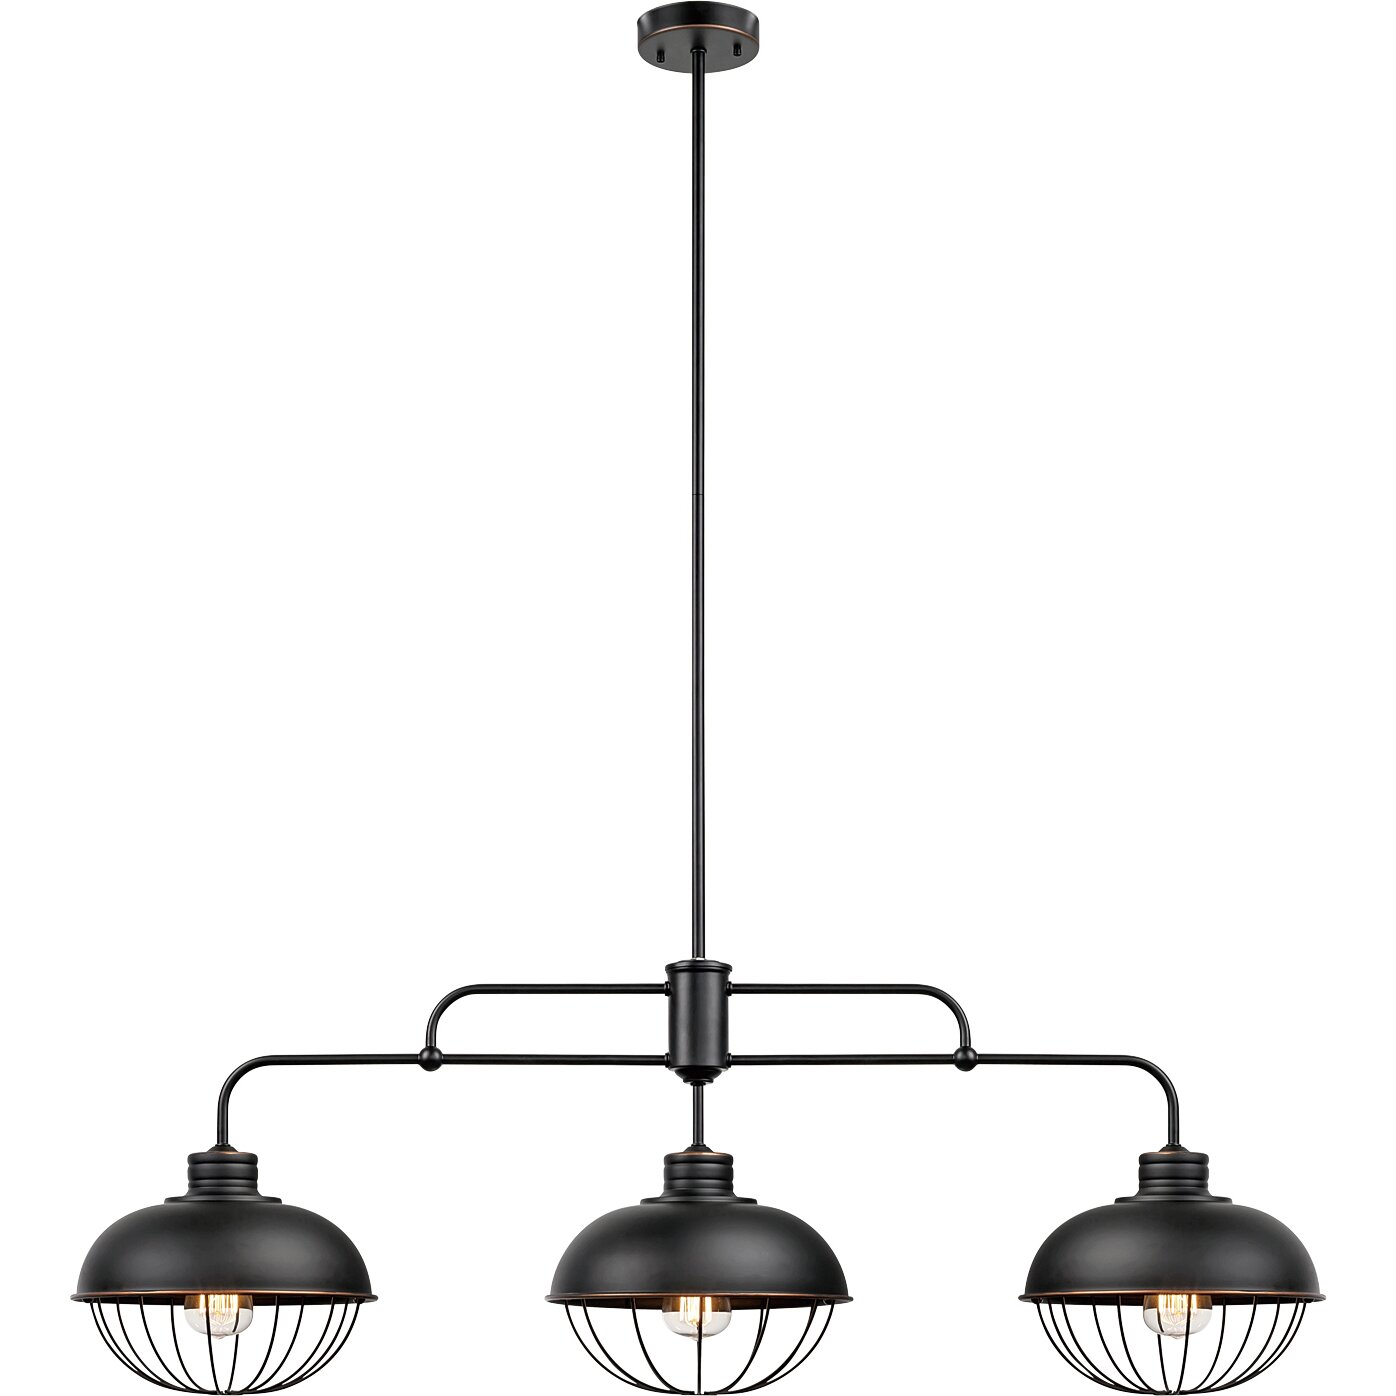 Kitchen Island Lantern Pendants: Globe Electric Company Elior 3-Light Kitchen Island Pendant & Reviews